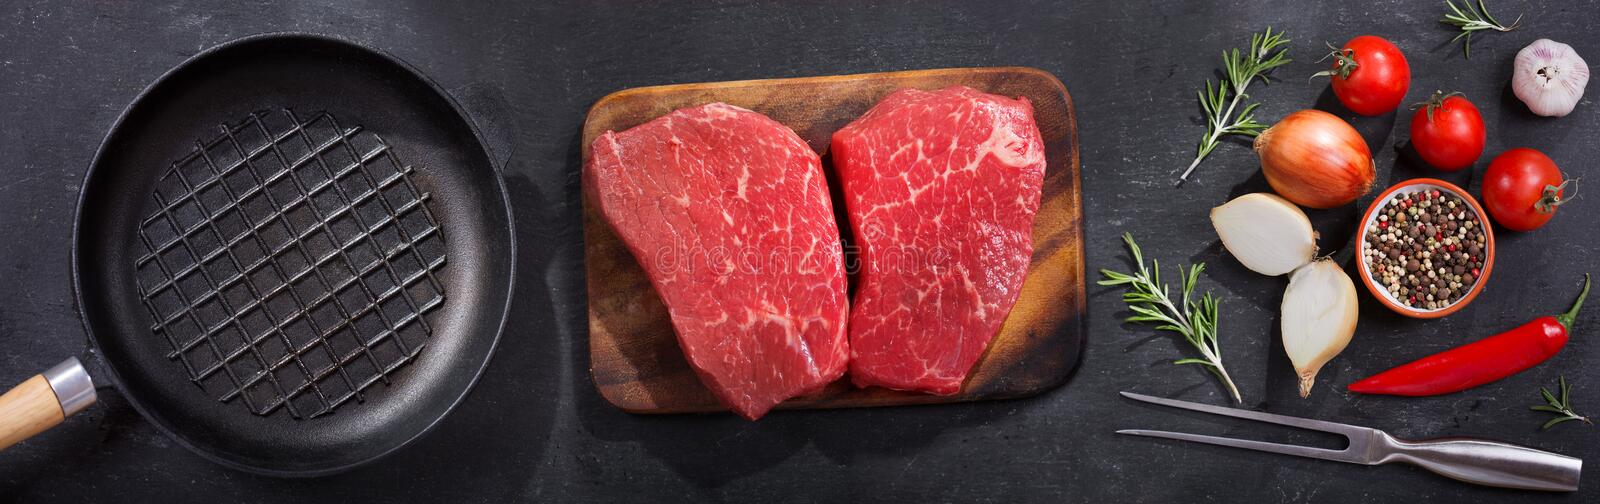 Fresh meat with ingredients for cooking, top view royalty free stock photography